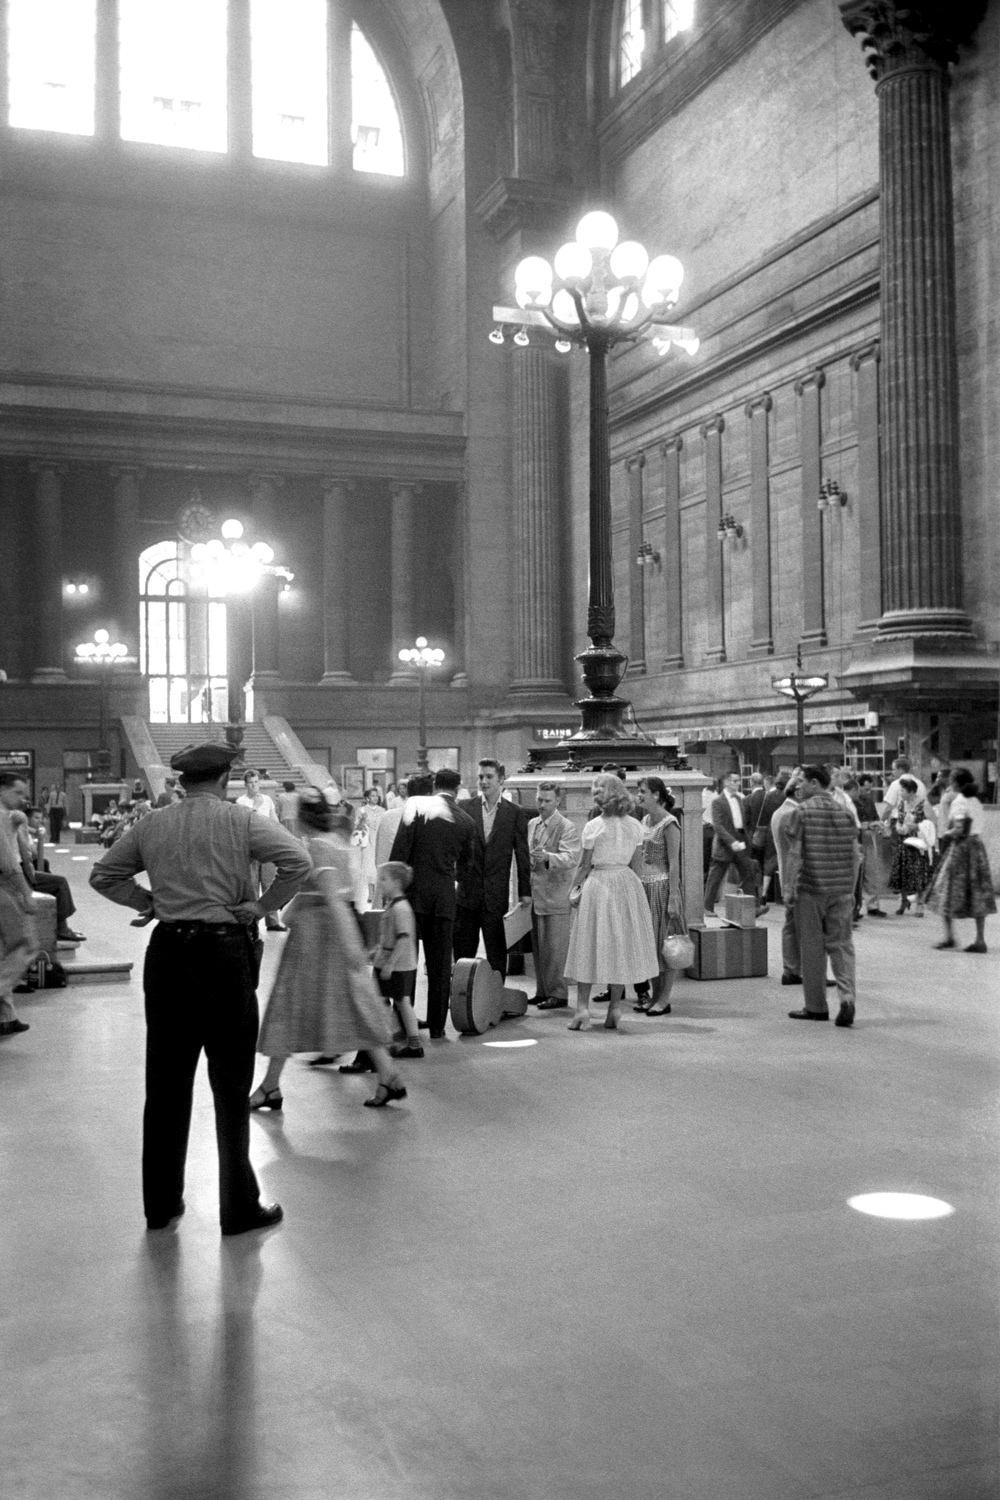 Concourse, Penn Station, New York City, July 3, 1956, before catching the train to Memphis.